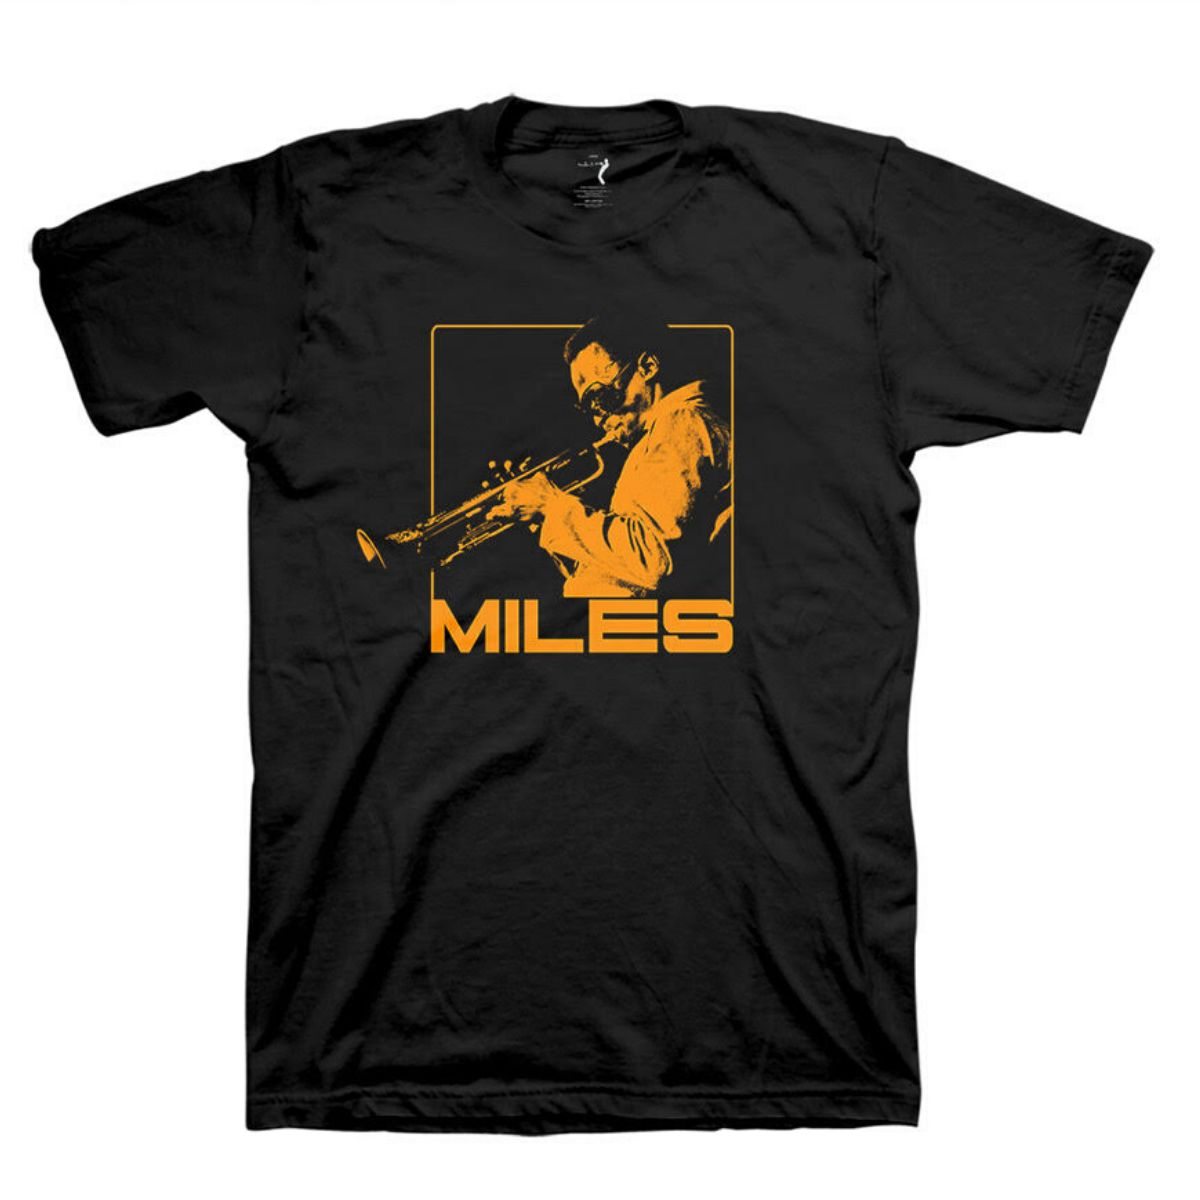 Shades Of Miles T-Shirt: Orange